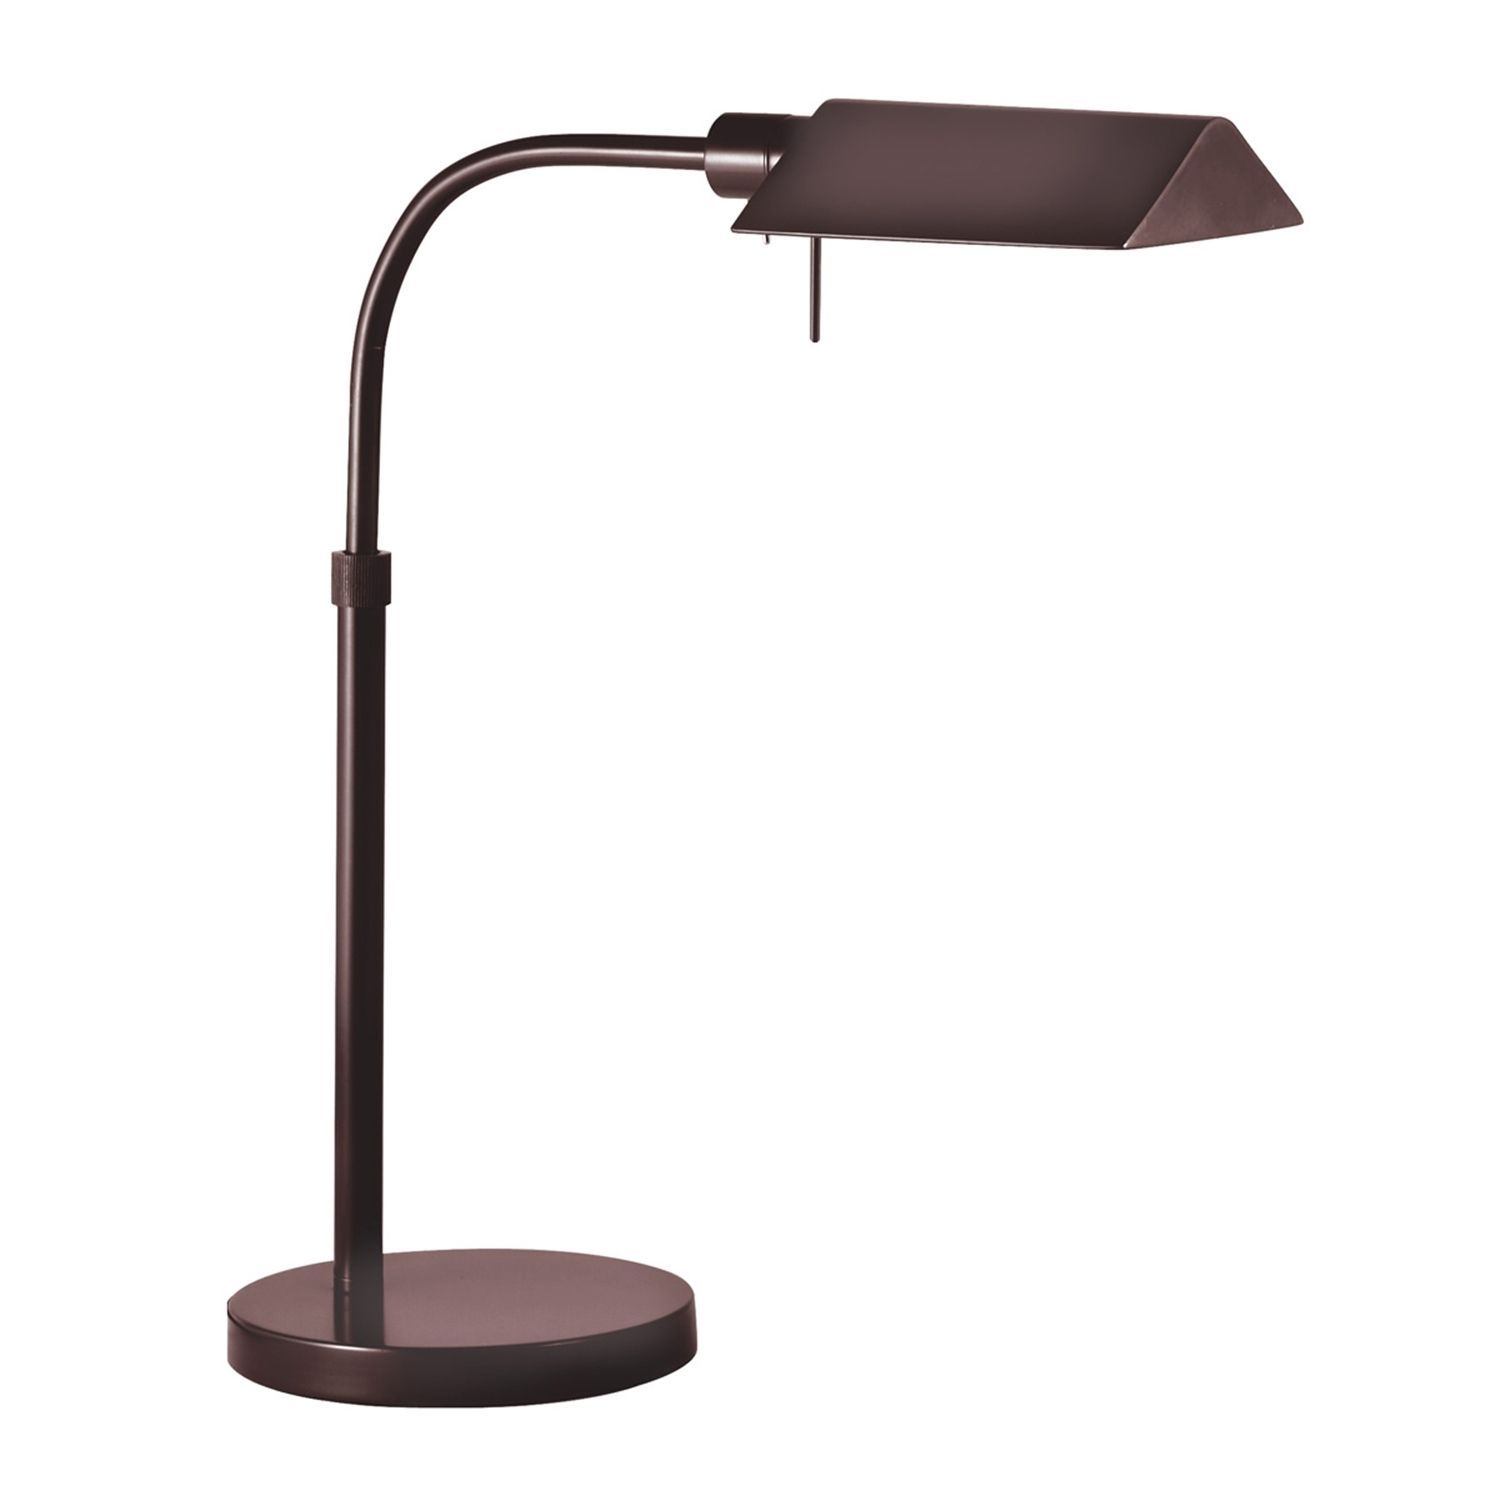 Sonneman lighting tenda pharmacy light table lamp satin nickel